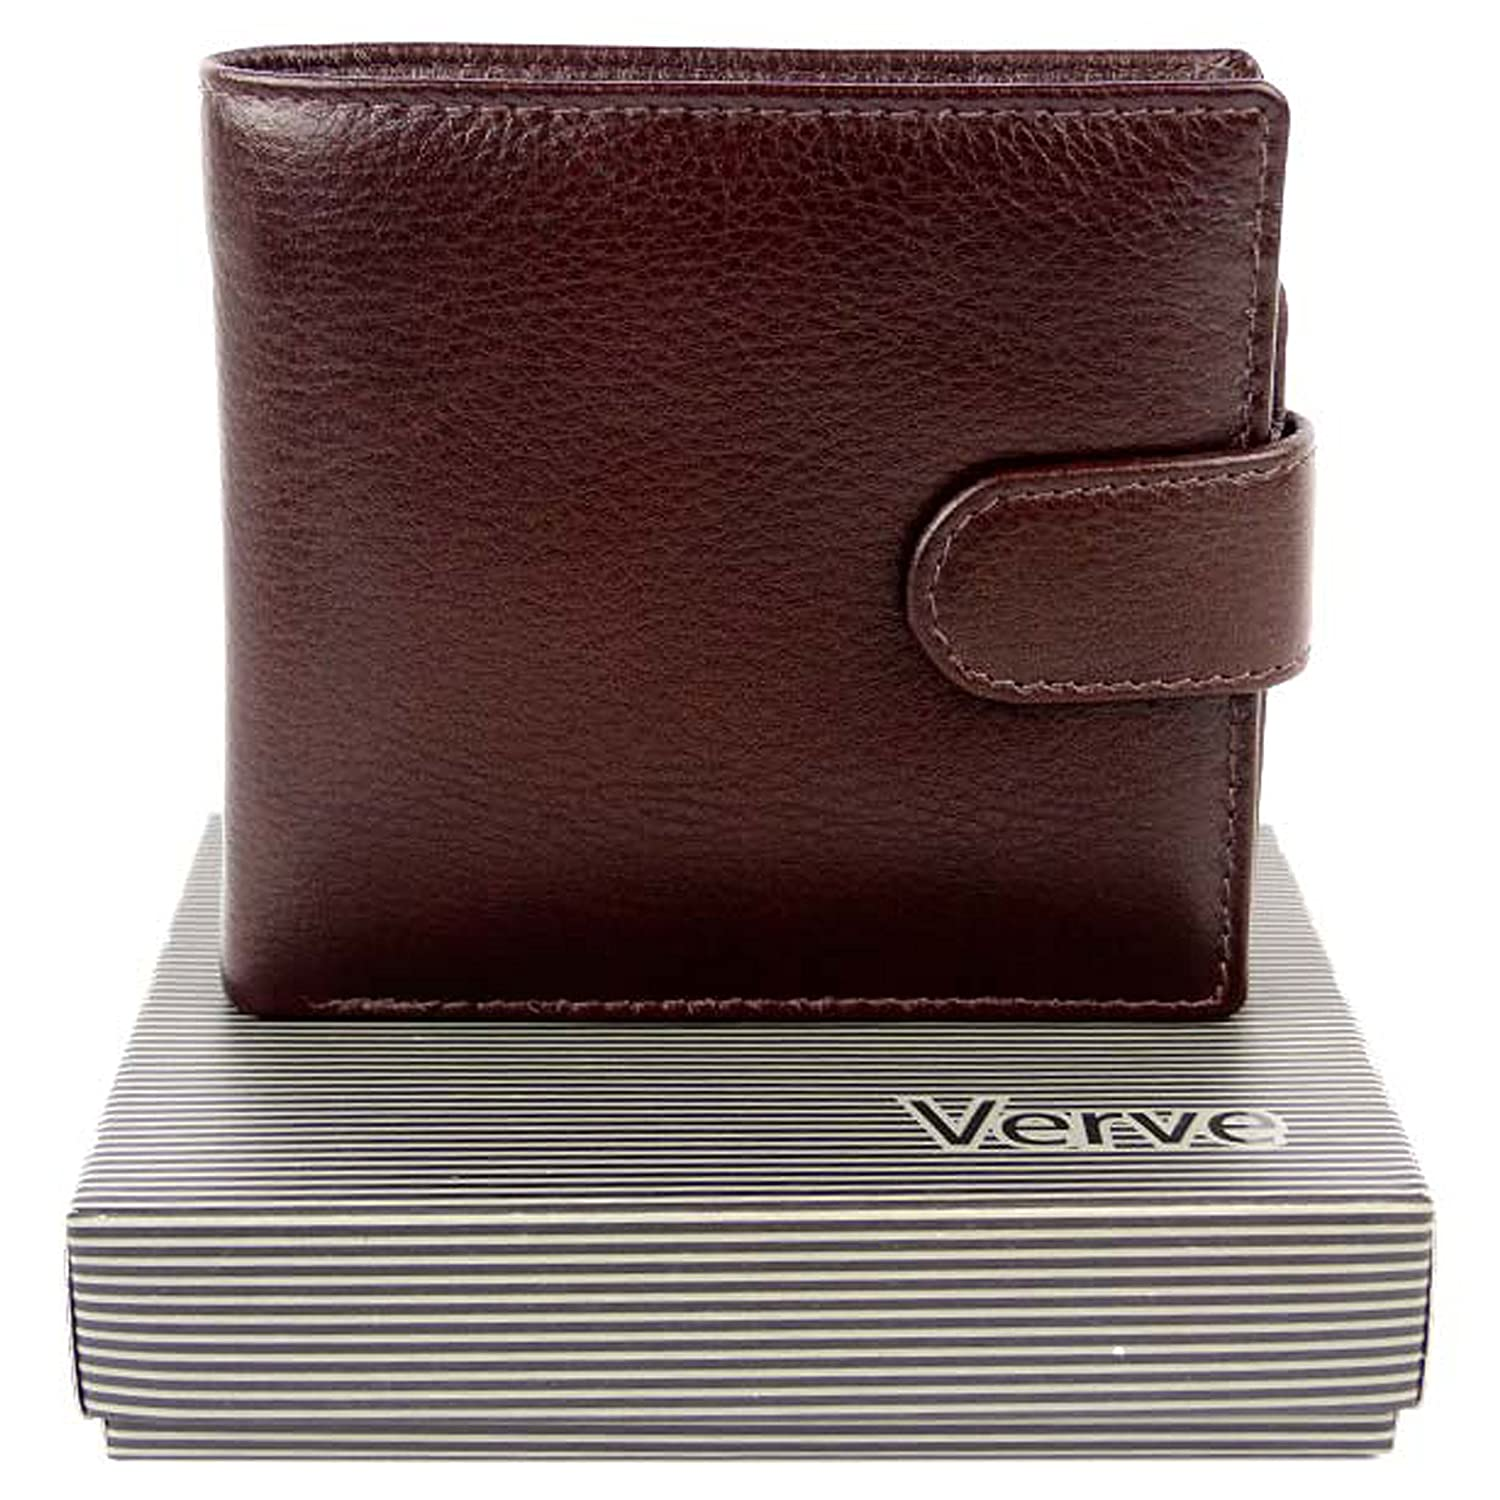 acd5eccd3aa451 Mala Leather Men's Brown Leather Wallet By Verve Gift Boxed Mala 12 Card  Slots Onesize Chestnut Brown at Amazon Men's Clothing store: